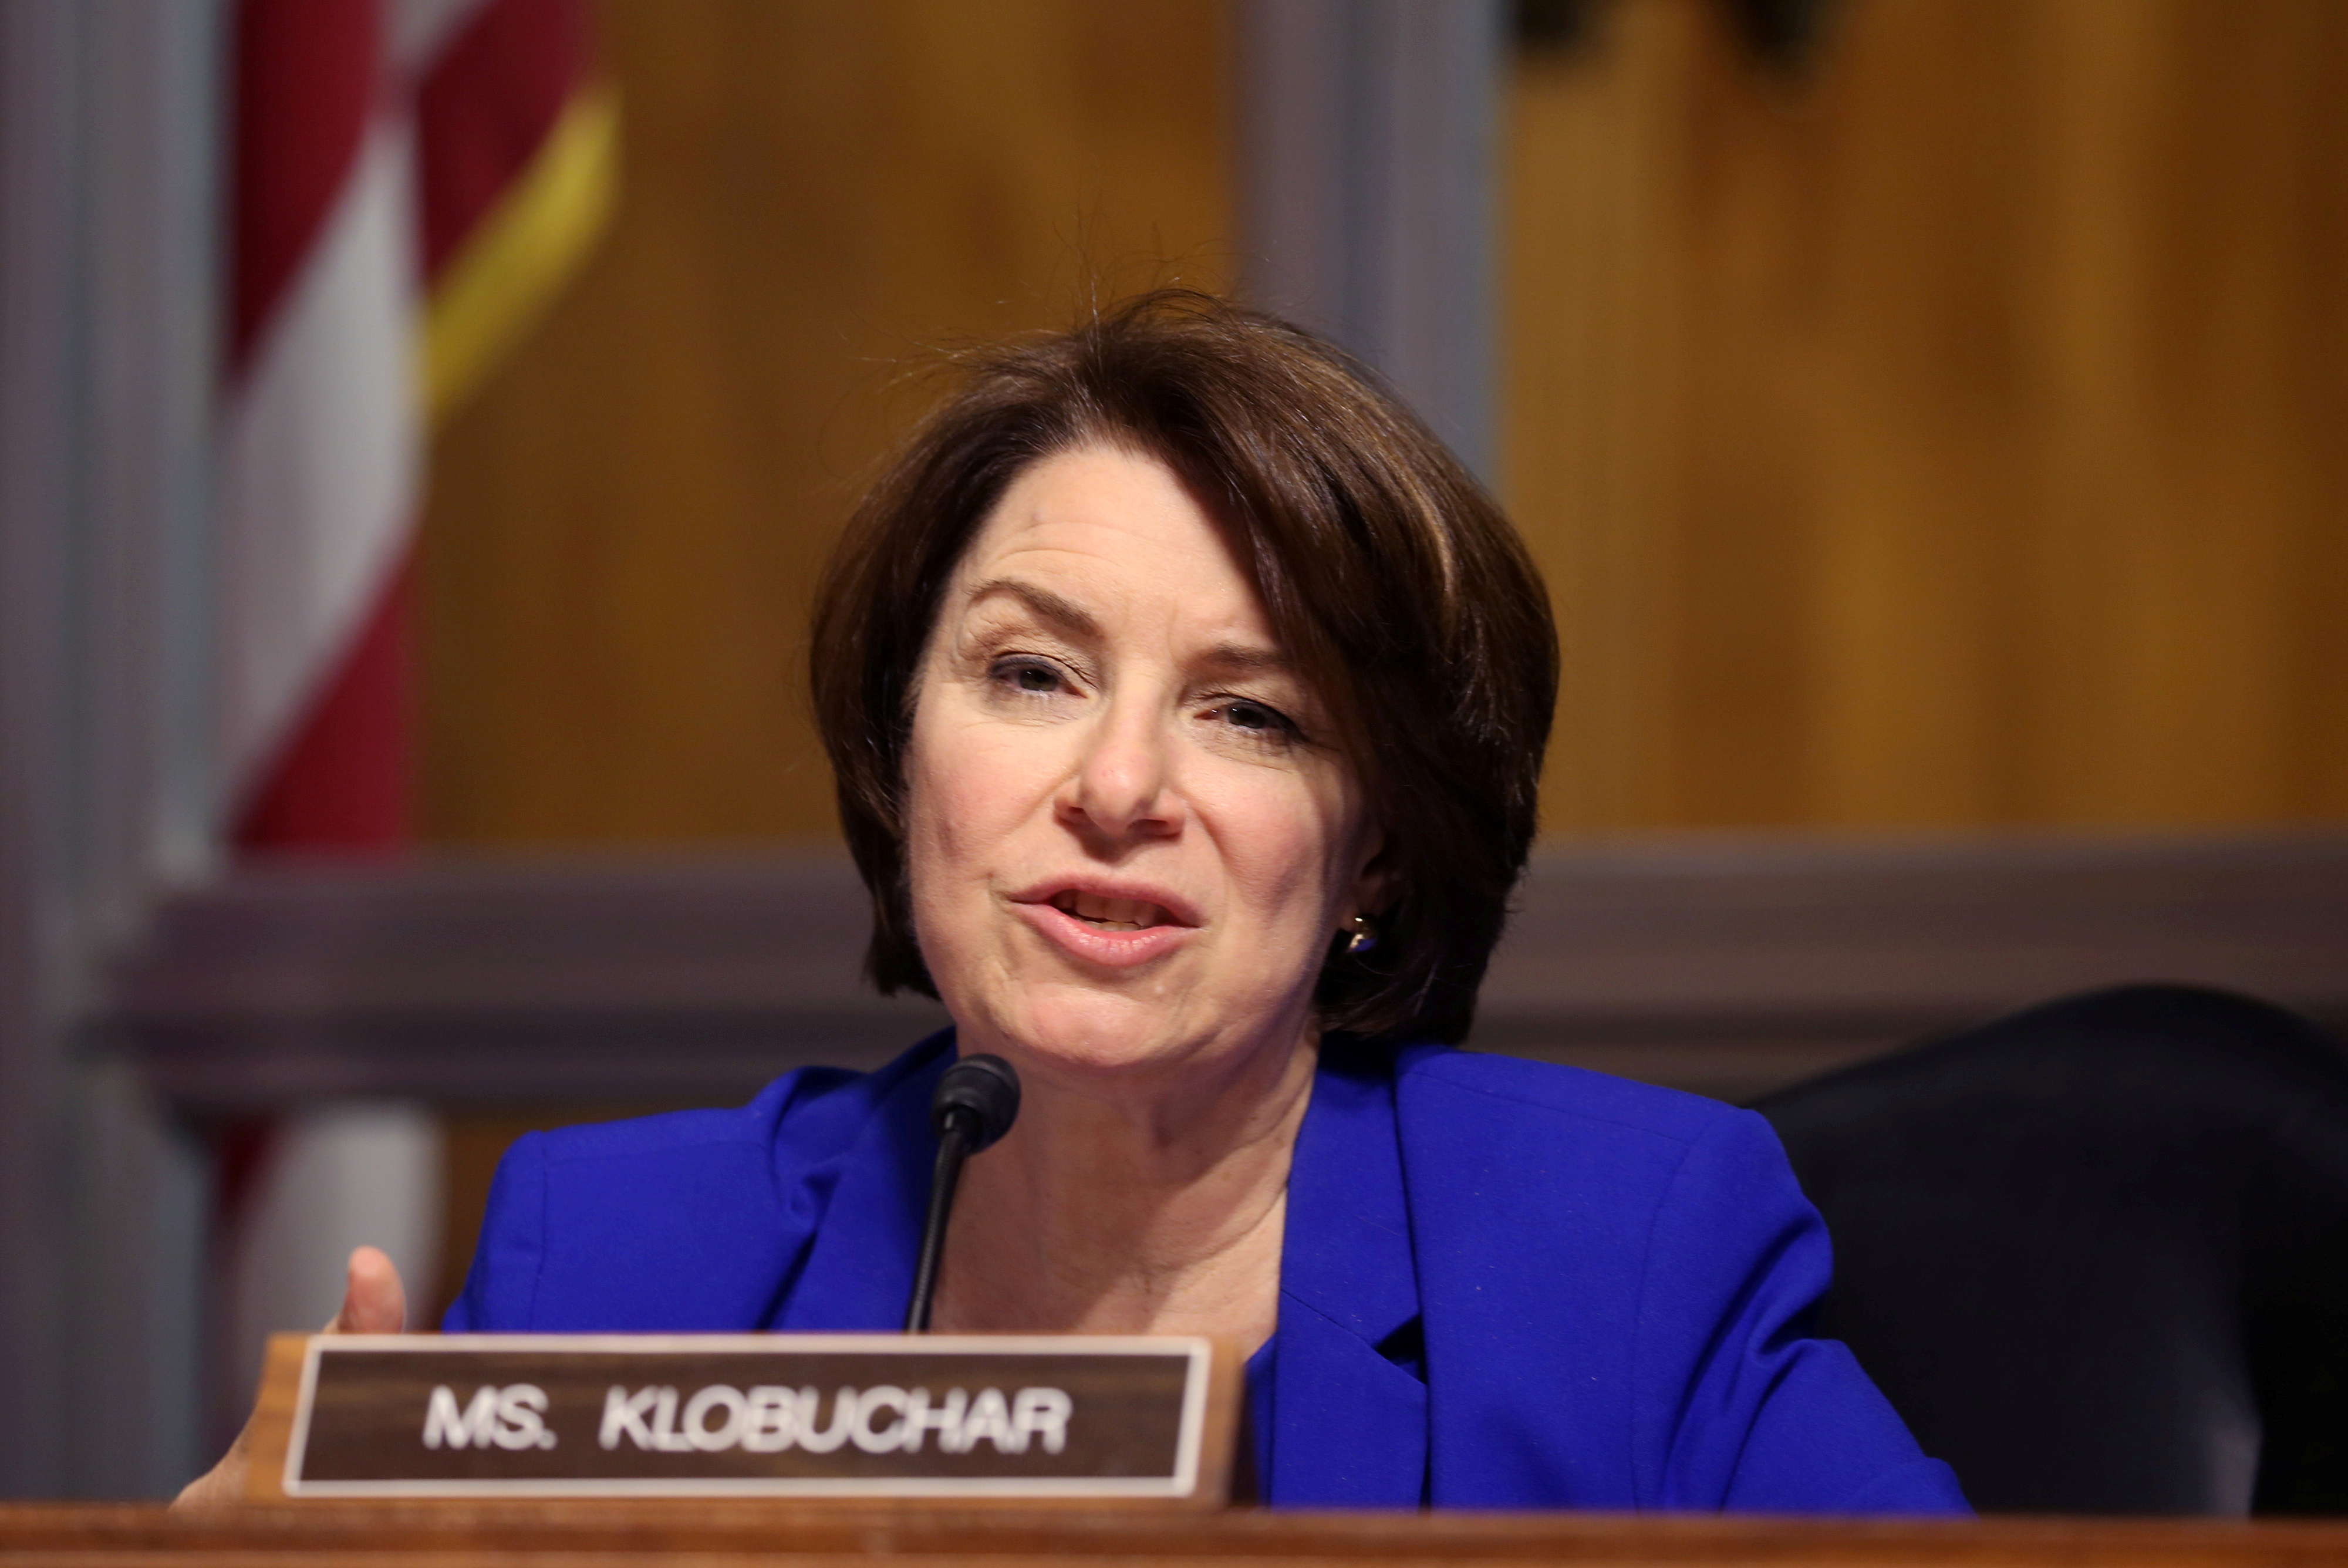 Sen. Amy Klobuchar, D-MN, asks questions during a hearing of the Senate Judiciary Subcommittee on Privacy, Technology, and the Law, at the U.S. Capitol in Washington. Tasos Katopodis/Pool via REUTERS